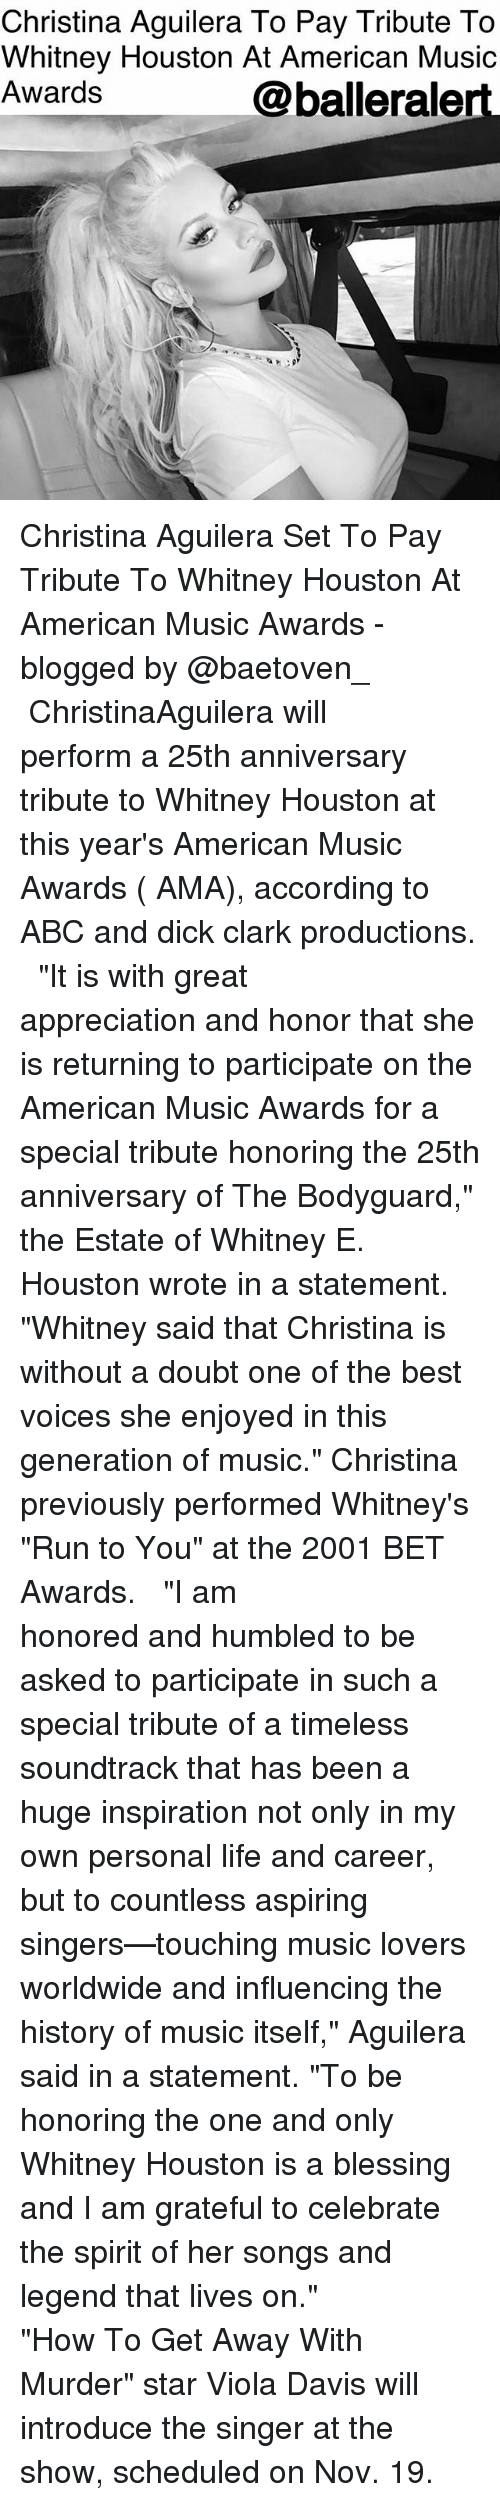 "whitney houston: Christina Aguilera To Pay Tribute To  Whitney Houston At American Music  Awards  @balleralert Christina Aguilera Set To Pay Tribute To Whitney Houston At American Music Awards - blogged by @baetoven_ ⠀⠀⠀⠀⠀⠀⠀ ⠀⠀⠀⠀⠀⠀⠀ ChristinaAguilera will perform a 25th anniversary tribute to Whitney Houston at this year's American Music Awards ( AMA), according to ABC and dick clark productions. ⠀⠀⠀⠀⠀⠀⠀ ⠀⠀⠀⠀⠀⠀⠀ ""It is with great appreciation and honor that she is returning to participate on the American Music Awards for a special tribute honoring the 25th anniversary of The Bodyguard,"" the Estate of Whitney E. Houston wrote in a statement. ""Whitney said that Christina is without a doubt one of the best voices she enjoyed in this generation of music."" Christina previously performed Whitney's ""Run to You"" at the 2001 BET Awards. ⠀⠀⠀⠀⠀⠀⠀ ⠀⠀⠀⠀⠀⠀⠀ ""I am honored and humbled to be asked to participate in such a special tribute of a timeless soundtrack that has been a huge inspiration not only in my own personal life and career, but to countless aspiring singers—touching music lovers worldwide and influencing the history of music itself,"" Aguilera said in a statement. ""To be honoring the one and only Whitney Houston is a blessing and I am grateful to celebrate the spirit of her songs and legend that lives on."" ⠀⠀⠀⠀⠀⠀⠀ ⠀⠀⠀⠀⠀⠀⠀ ""How To Get Away With Murder"" star Viola Davis will introduce the singer at the show, scheduled on Nov. 19."